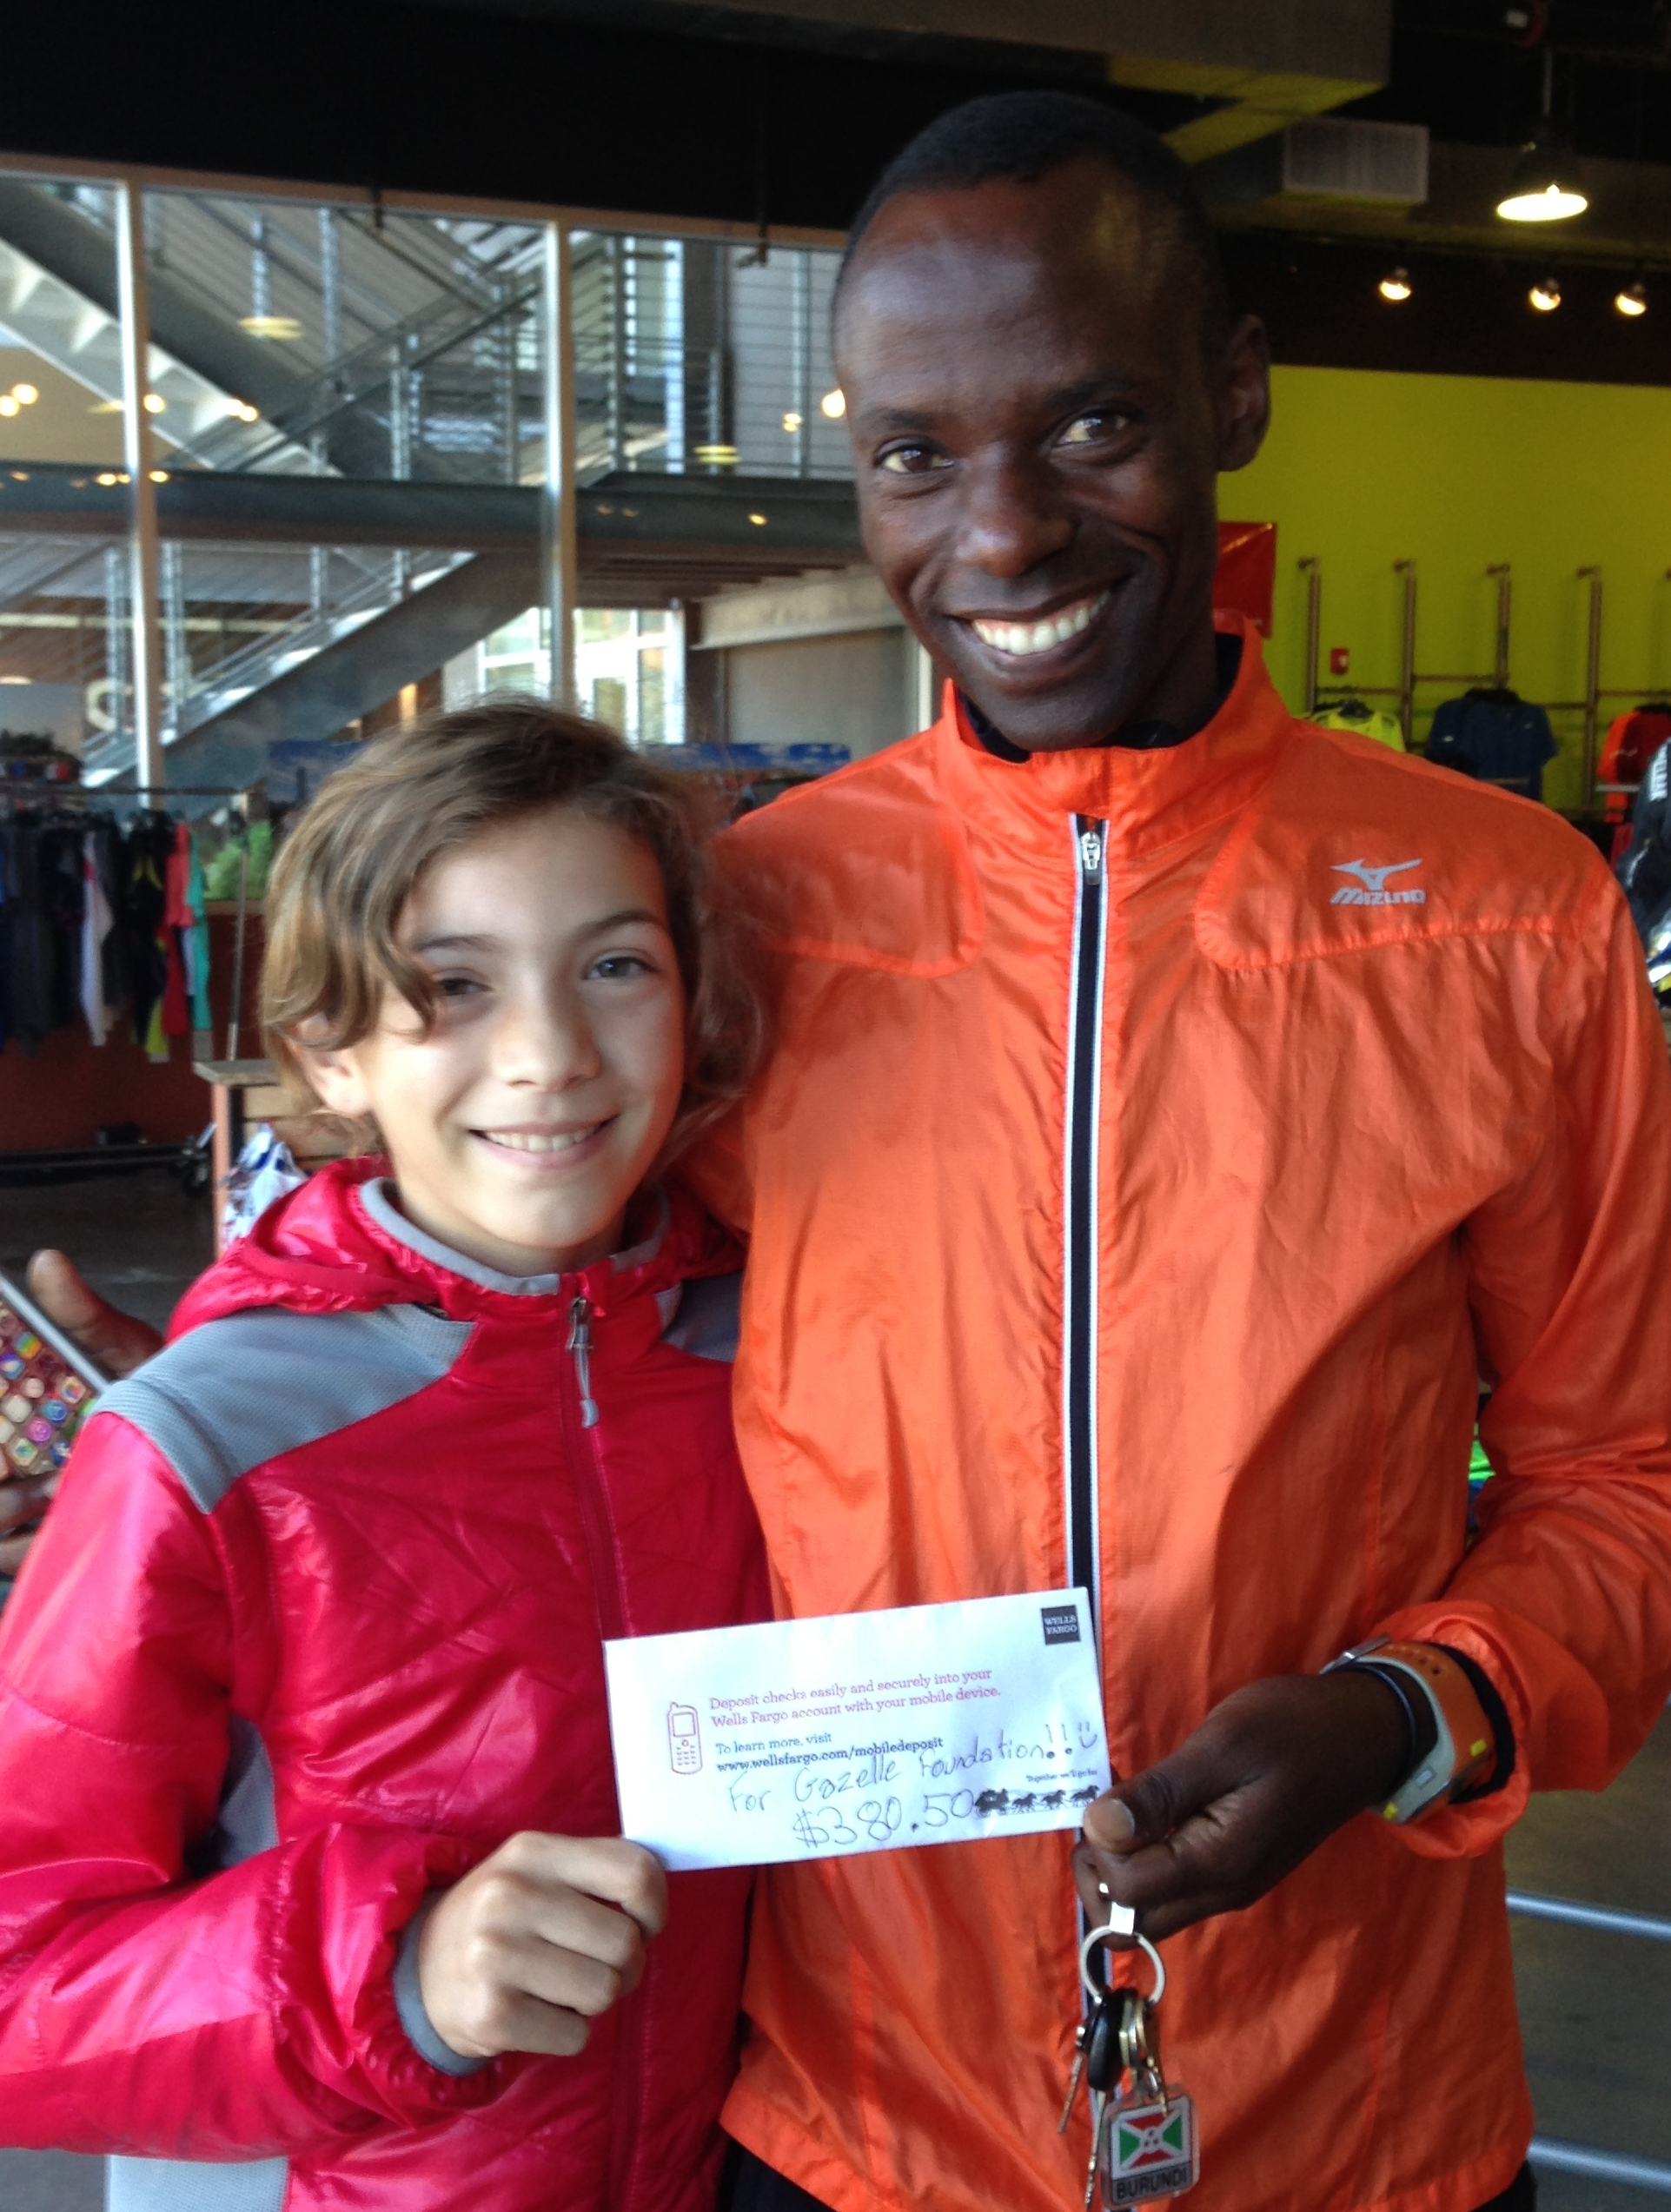 Trini at age 10 raised money for the Gazelle Foundation at her school.